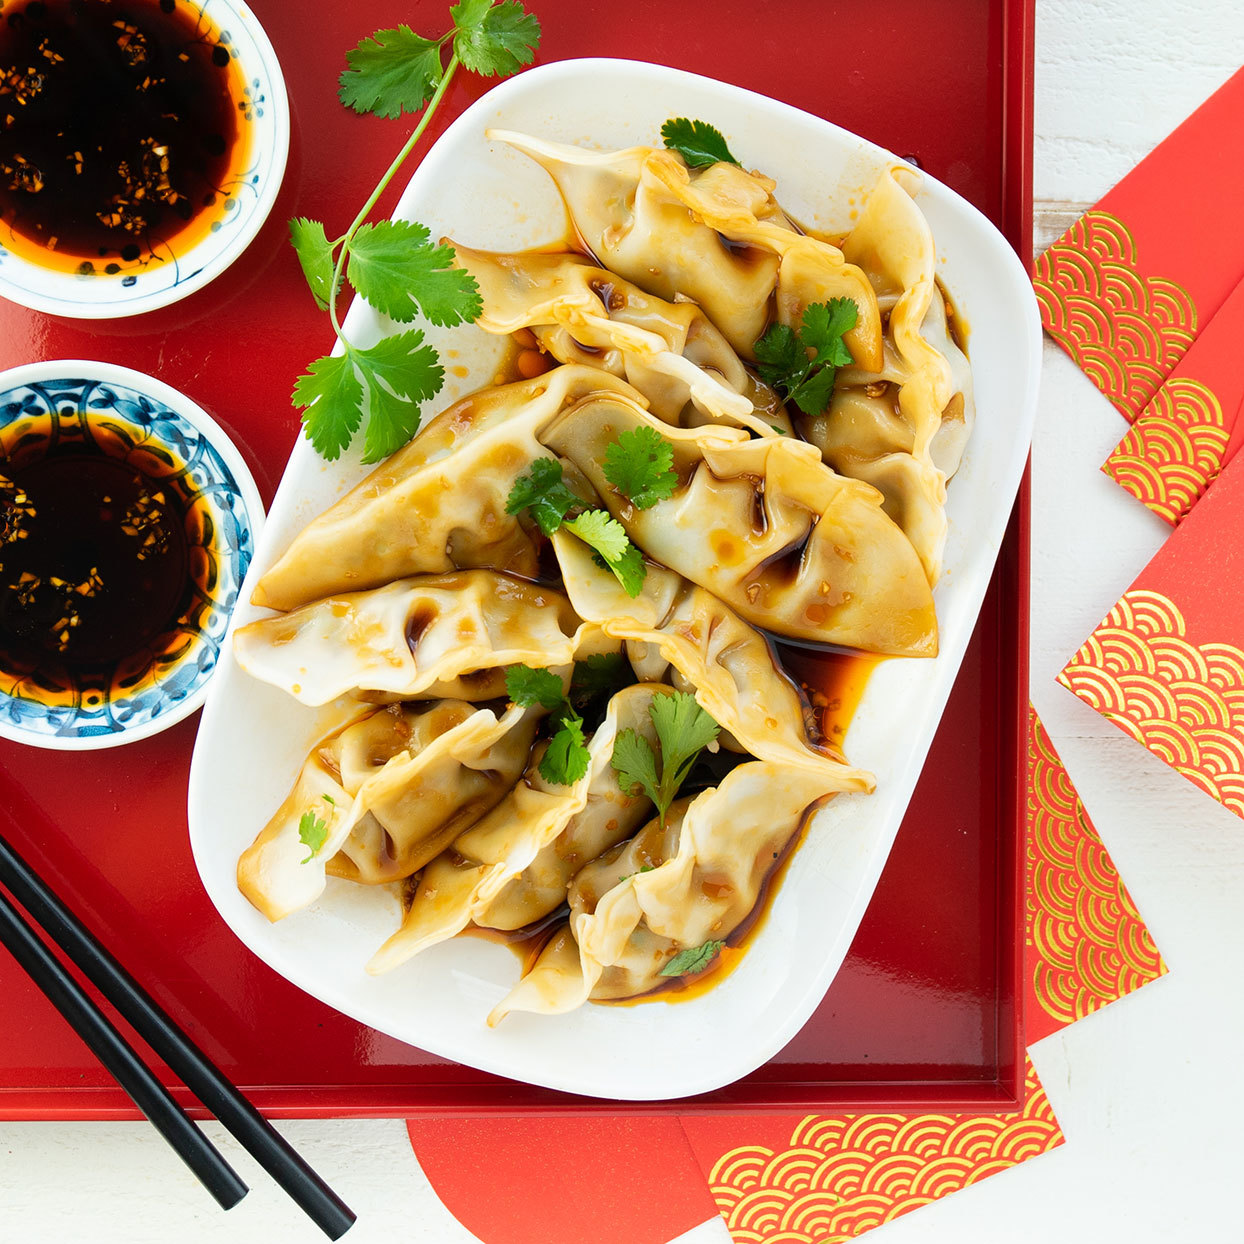 Make Gingery Chicken and Shiitake Dumplings to Celebrate the Lunar New Year